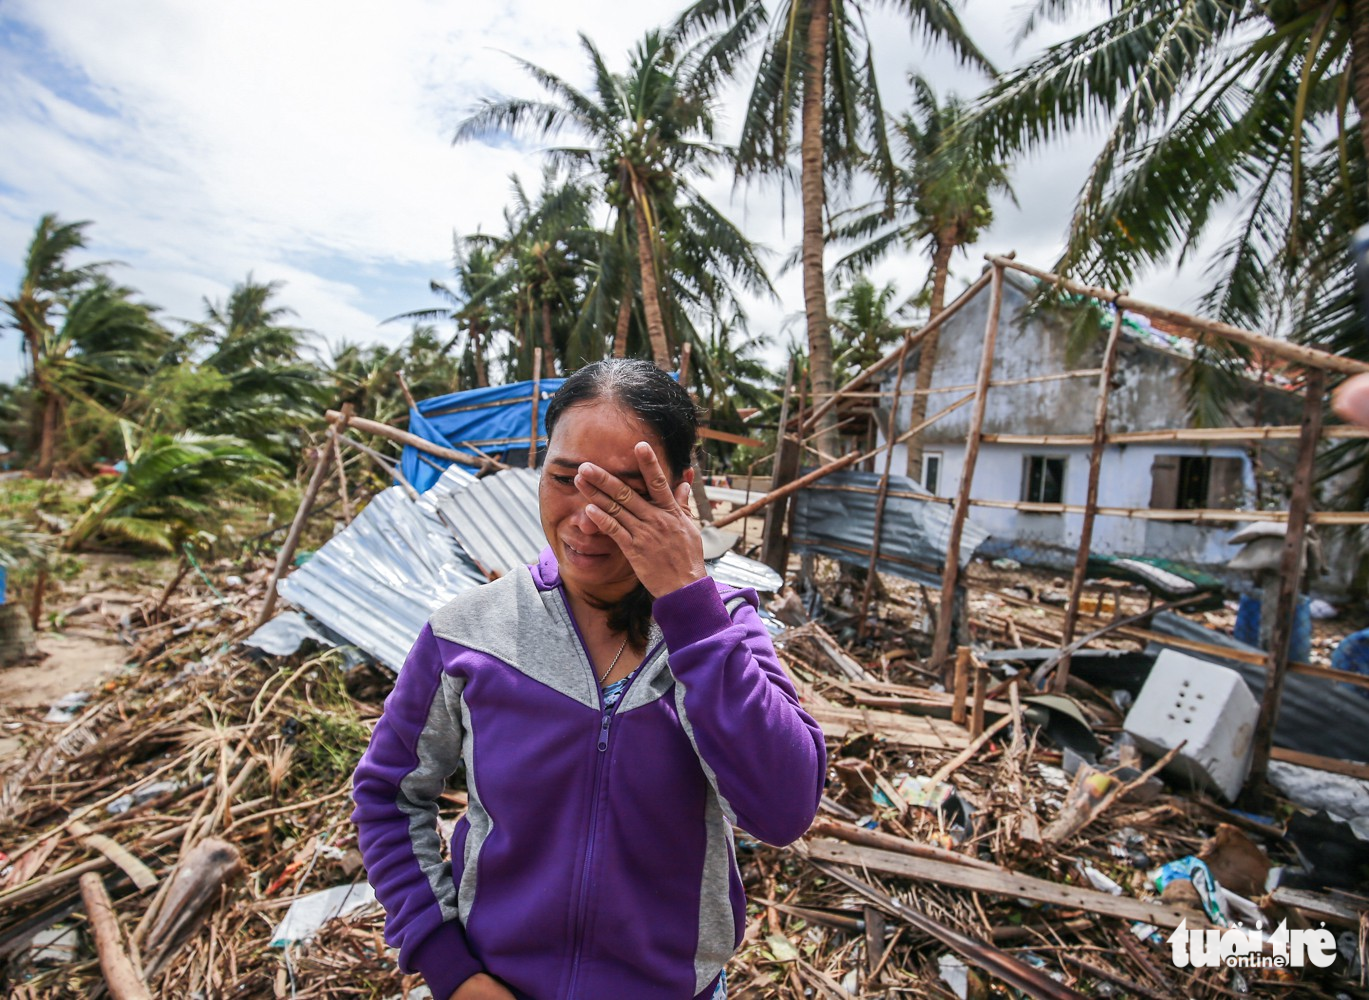 Phan Thi Bo, a resident of Van Phuoc Commune, wipes the tears from her face. Her home and fishing equipment were destroyed by storm Damrey.